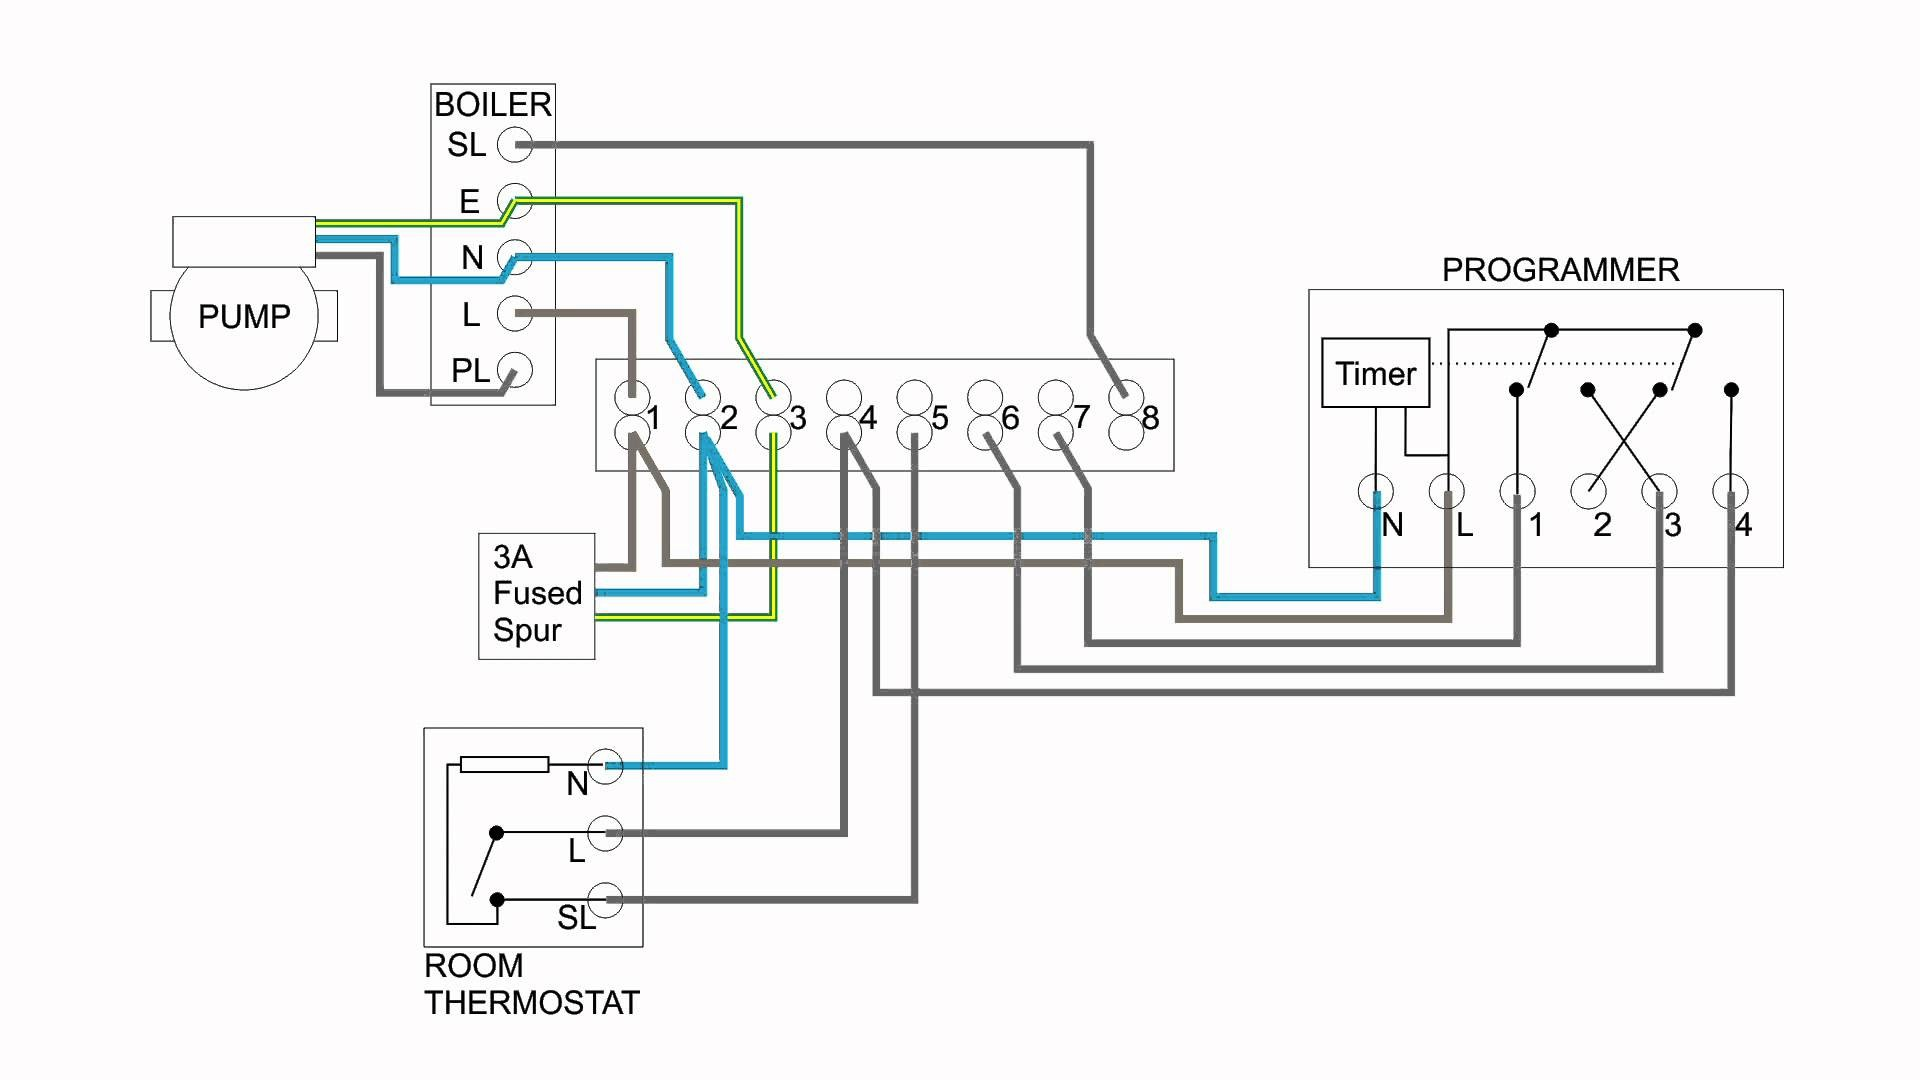 Electric heat wiring diagram inspirational wiring diagram image underfloor heating wiring diagram s plan 5a24b6ff52ff1 in electric asfbconference2016 Choice Image